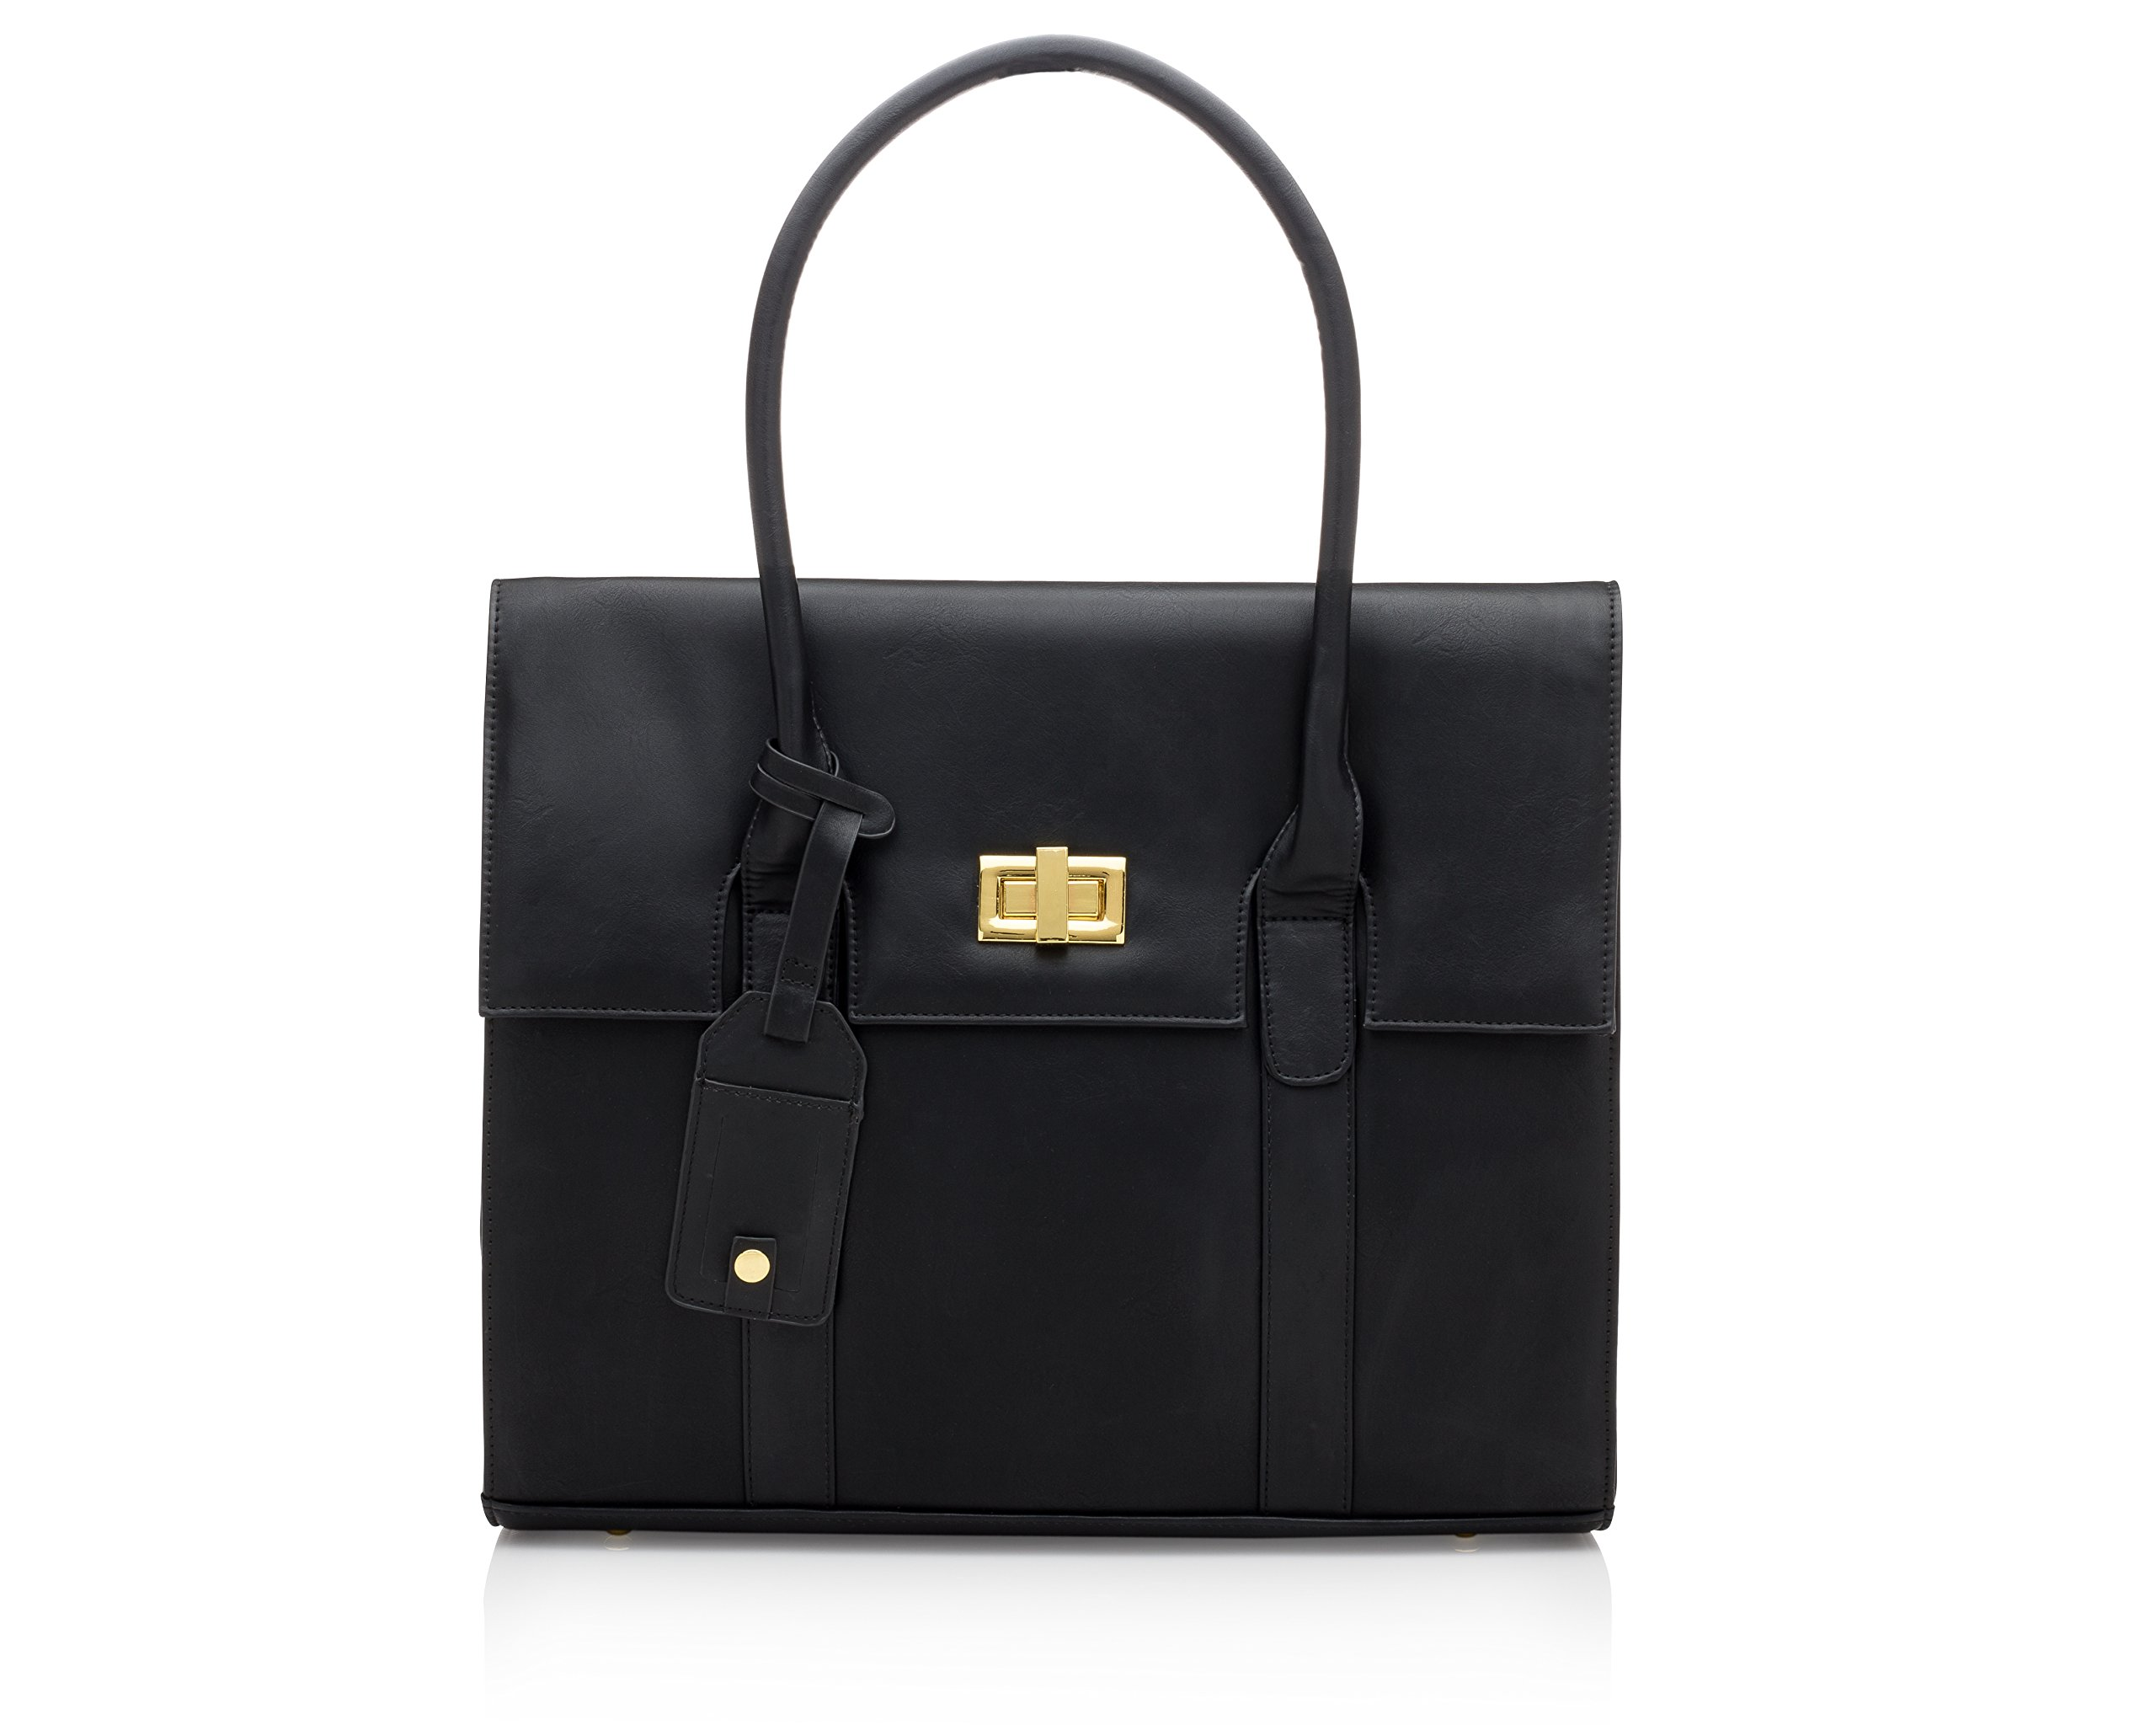 Graceship-Laptop-Bag-for-Women-London-15-inch-Black-Computer-BagBriefcase-for-WomenWork-Tote-Bag-for-Women